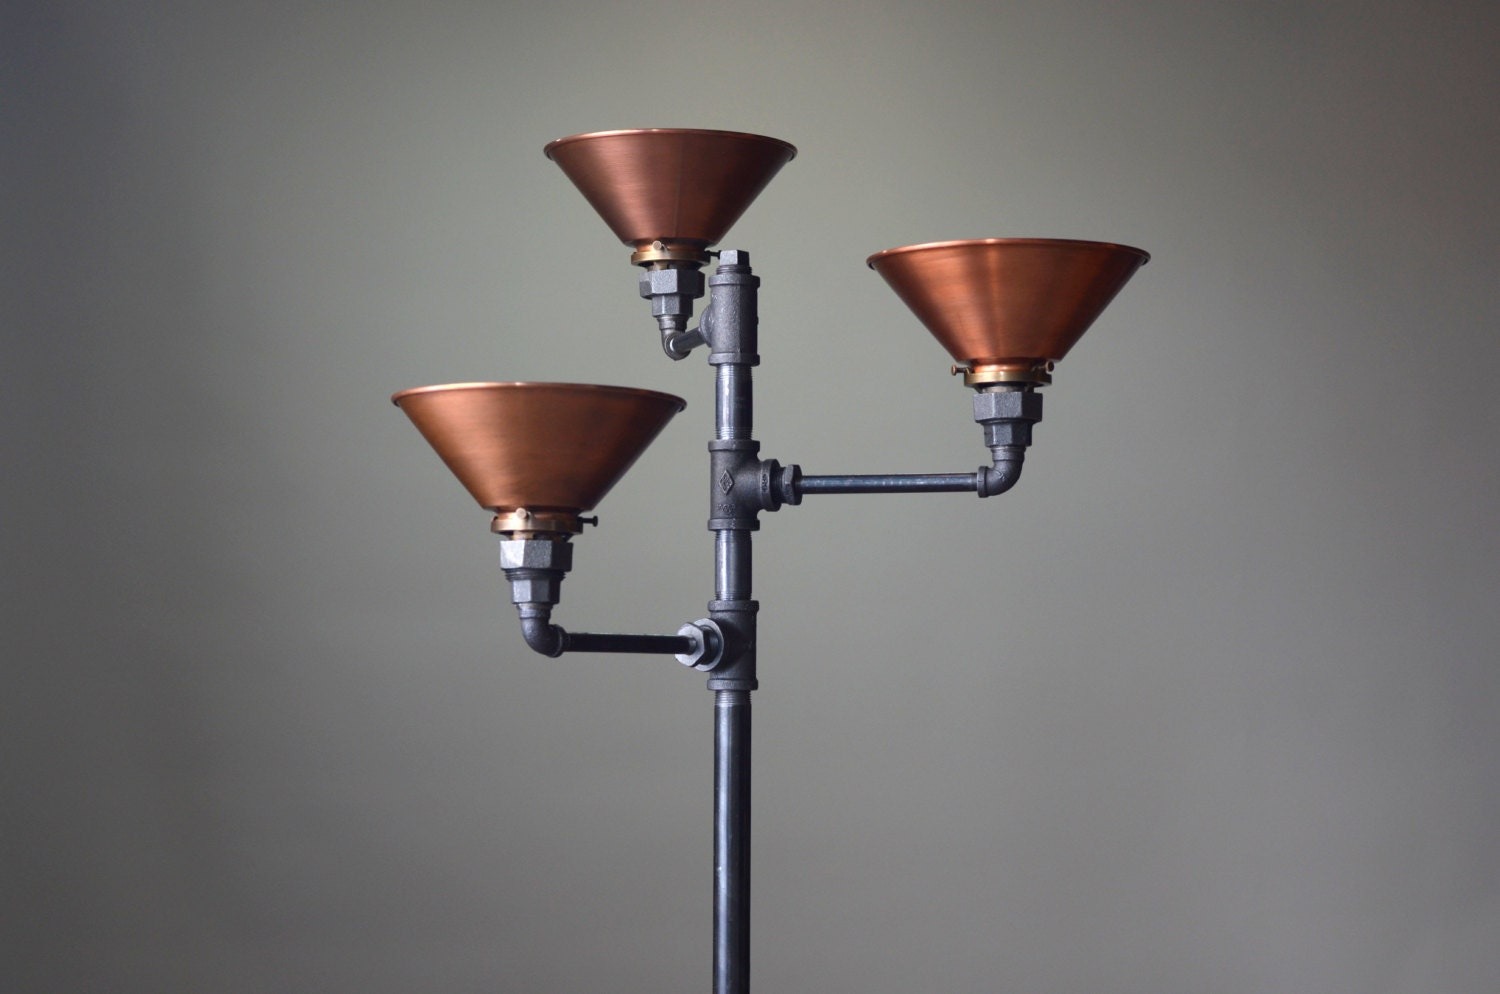 Torchiere floor lamp copper shade industrial floor lamp zoom aloadofball Choice Image